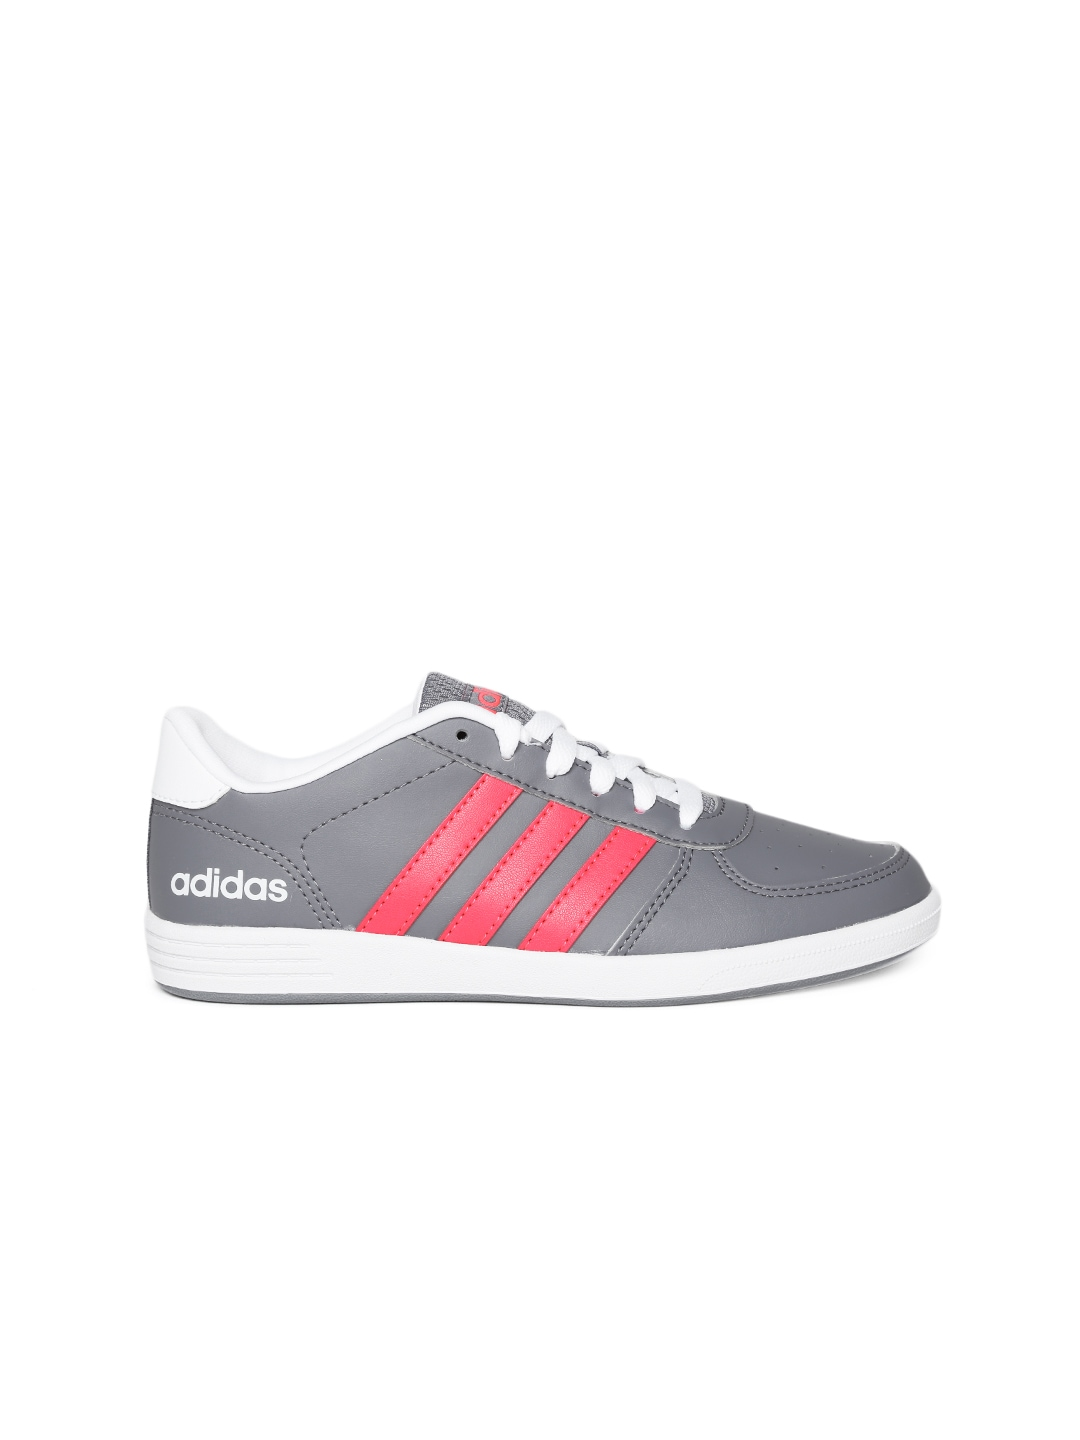 adidas neo for sale